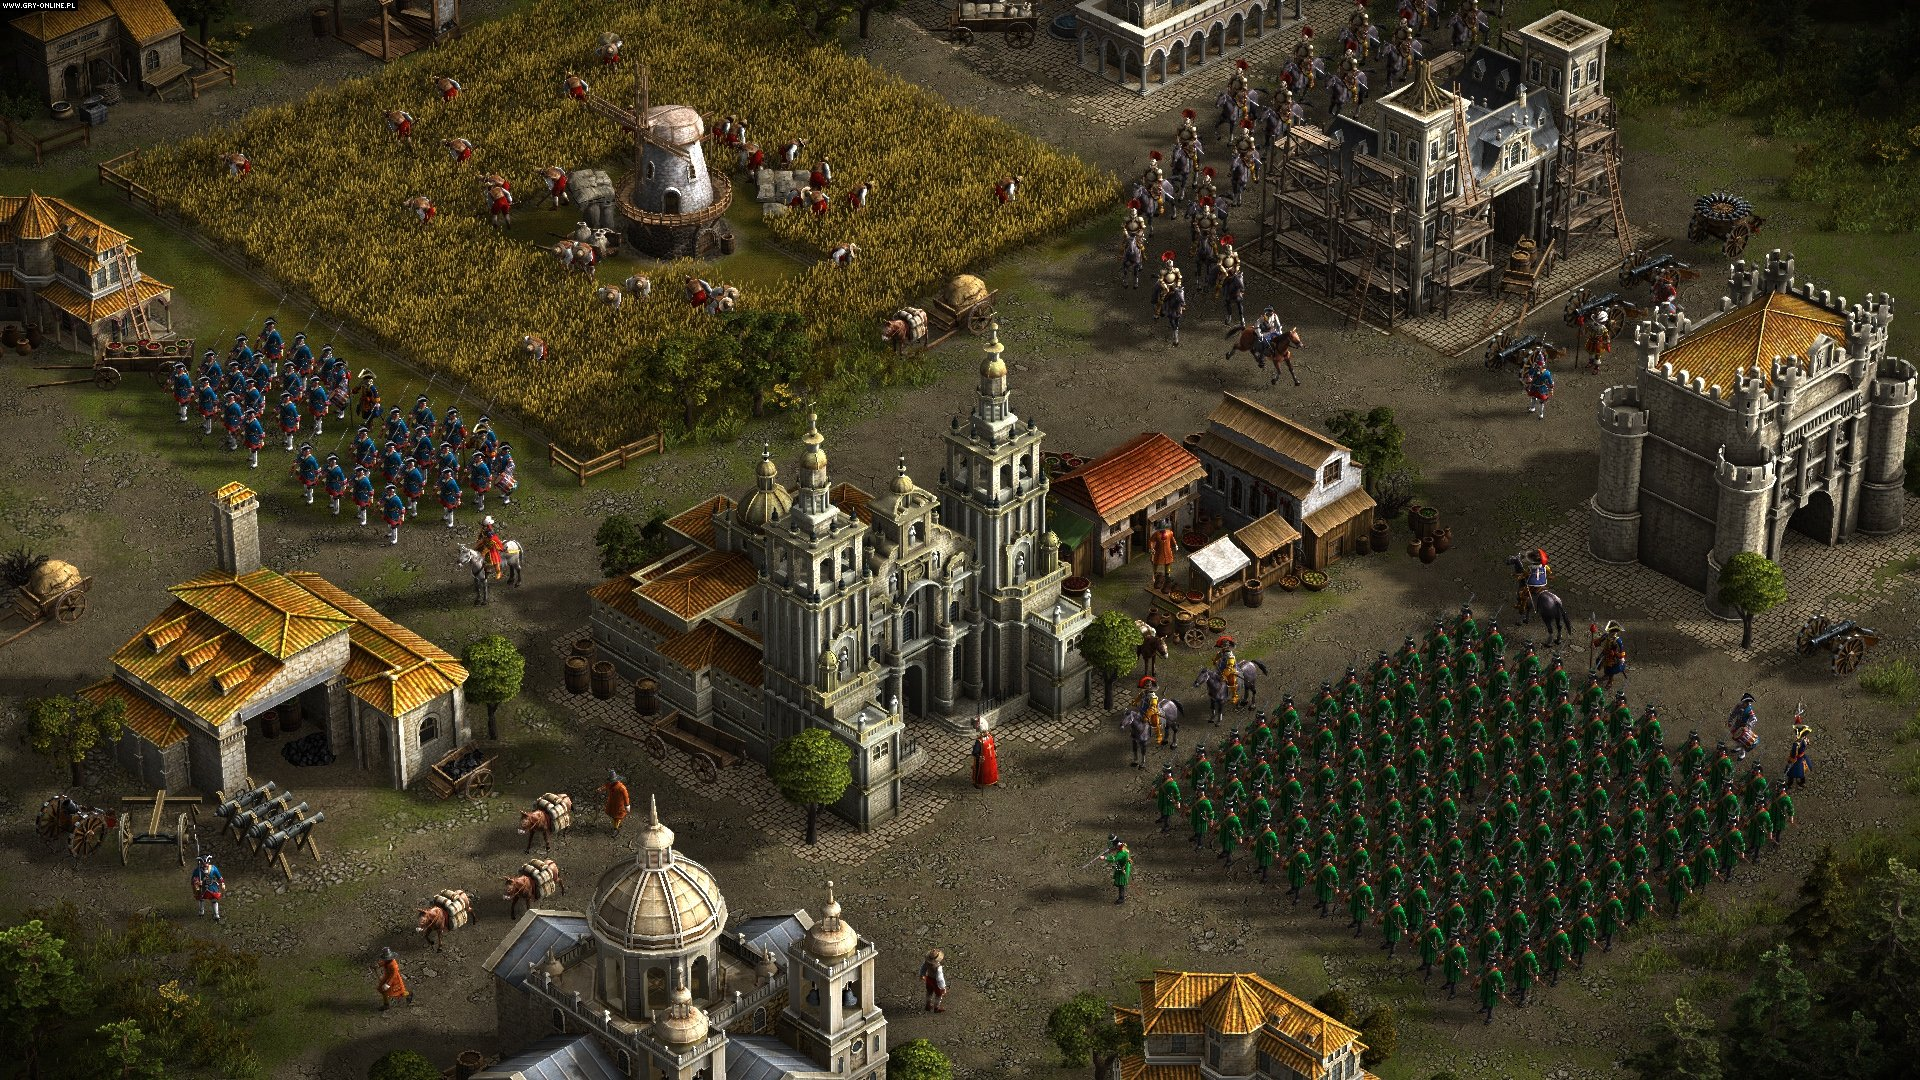 Cossacks 3 PC Games Image 4/20, GSC Game World, GSC World Publishing